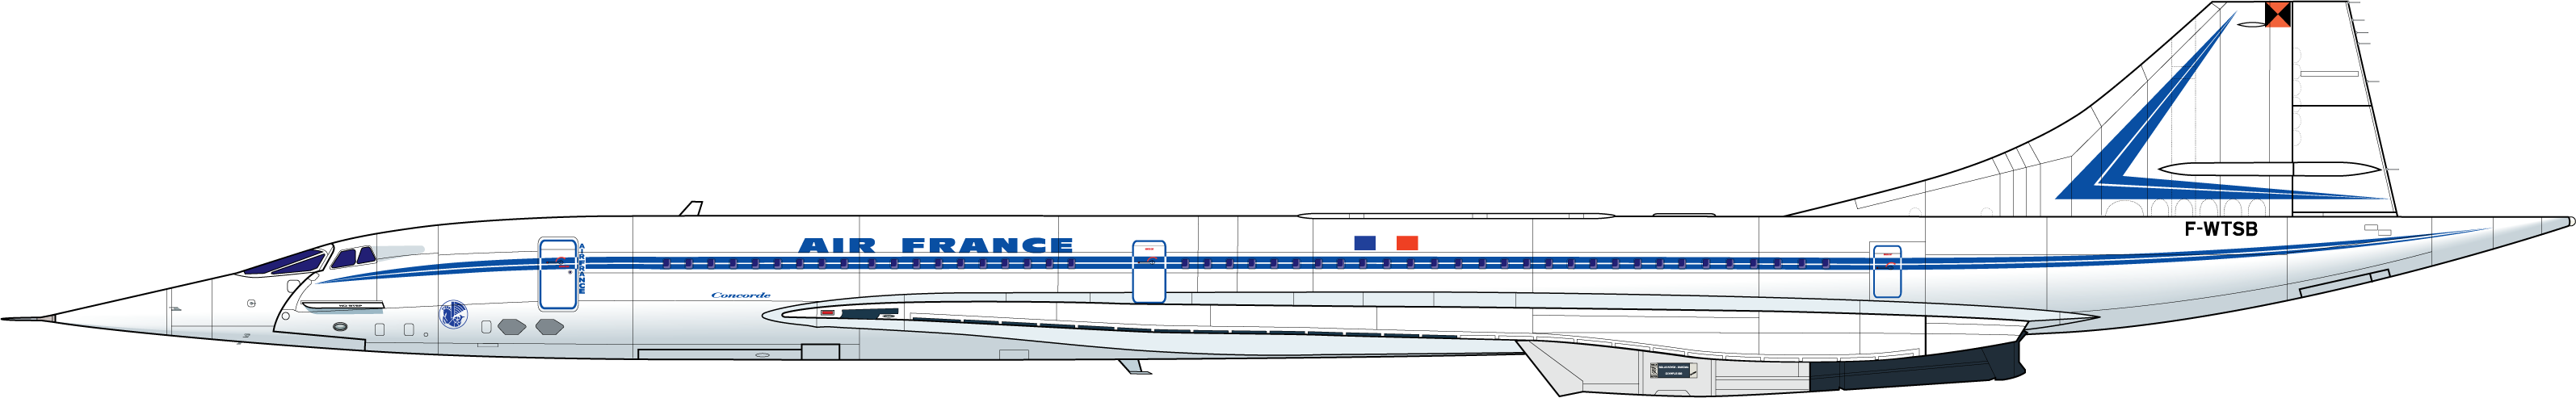 Concorde_F-WTSB_1973.png